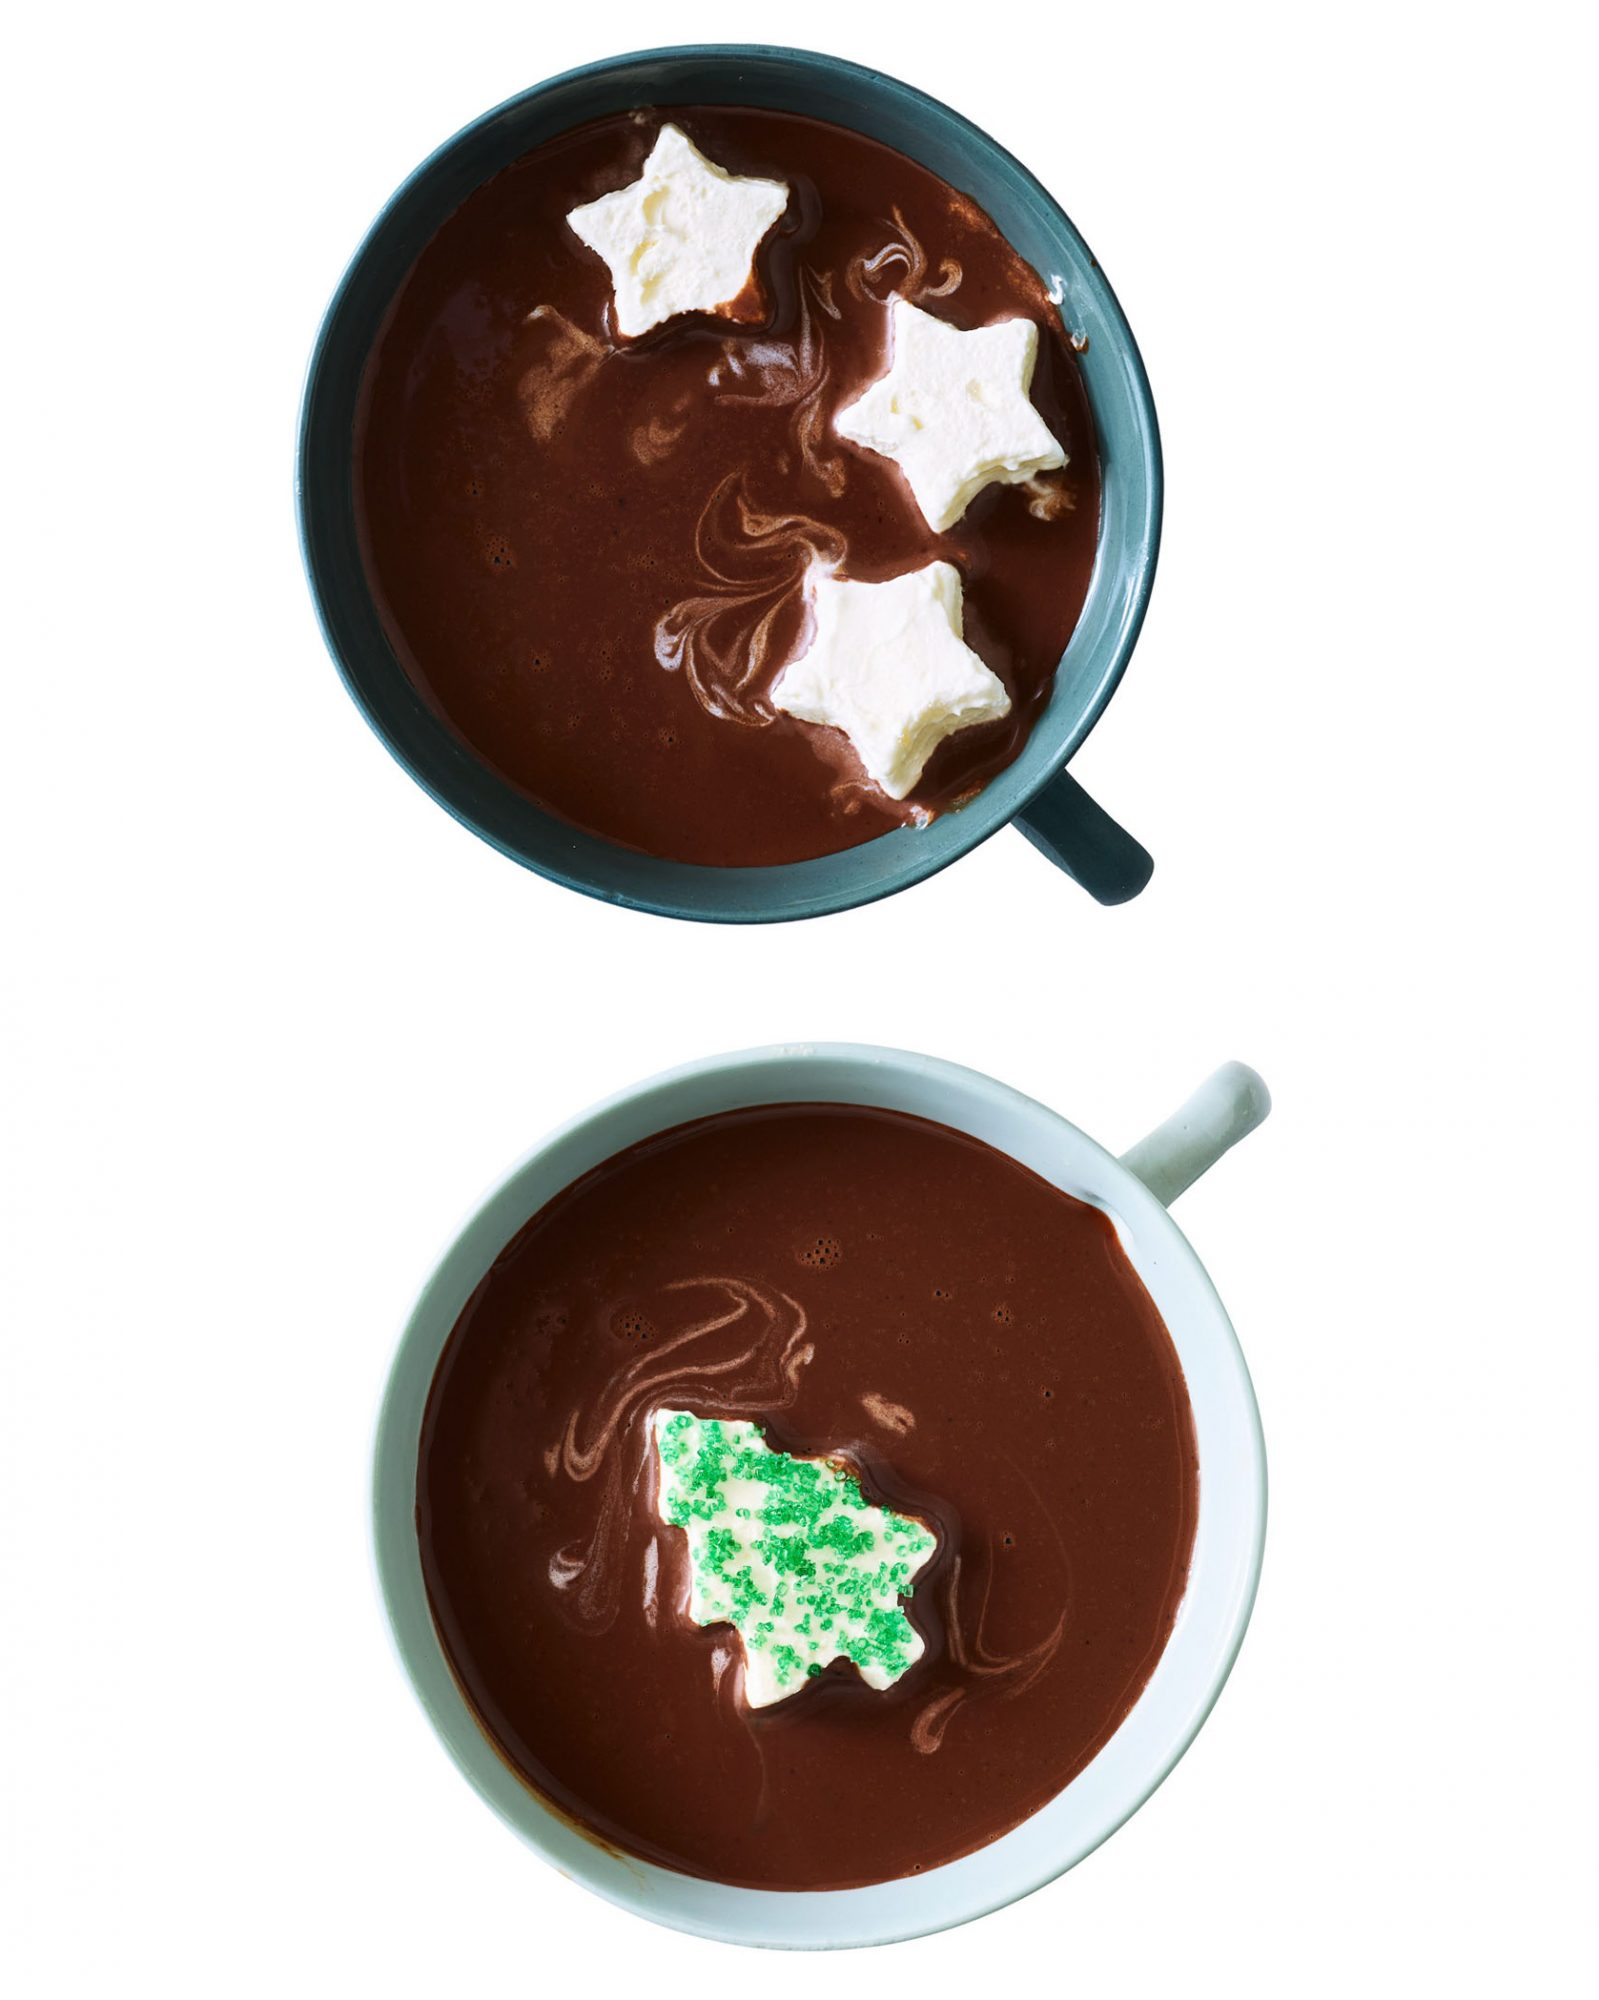 two mugs of hot cocoa with festive whipped cream shapes